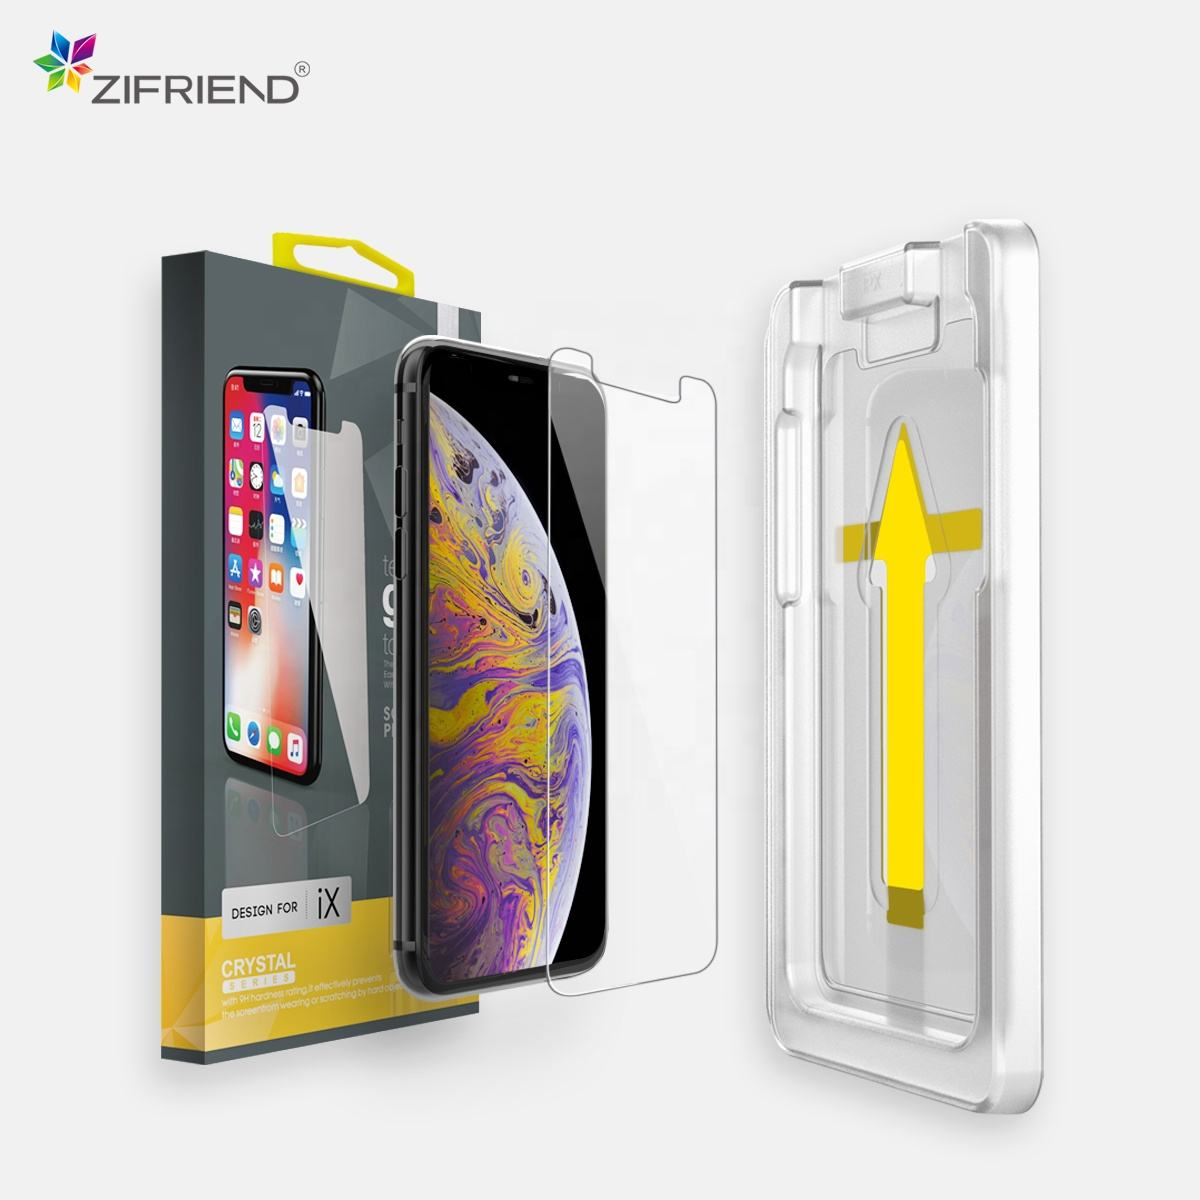 for iPhone 11 Pro Max SE X Xs Xr 8 7 6s 6 plus screen protector Free Sample Premium mobile phone tempered glass protective film